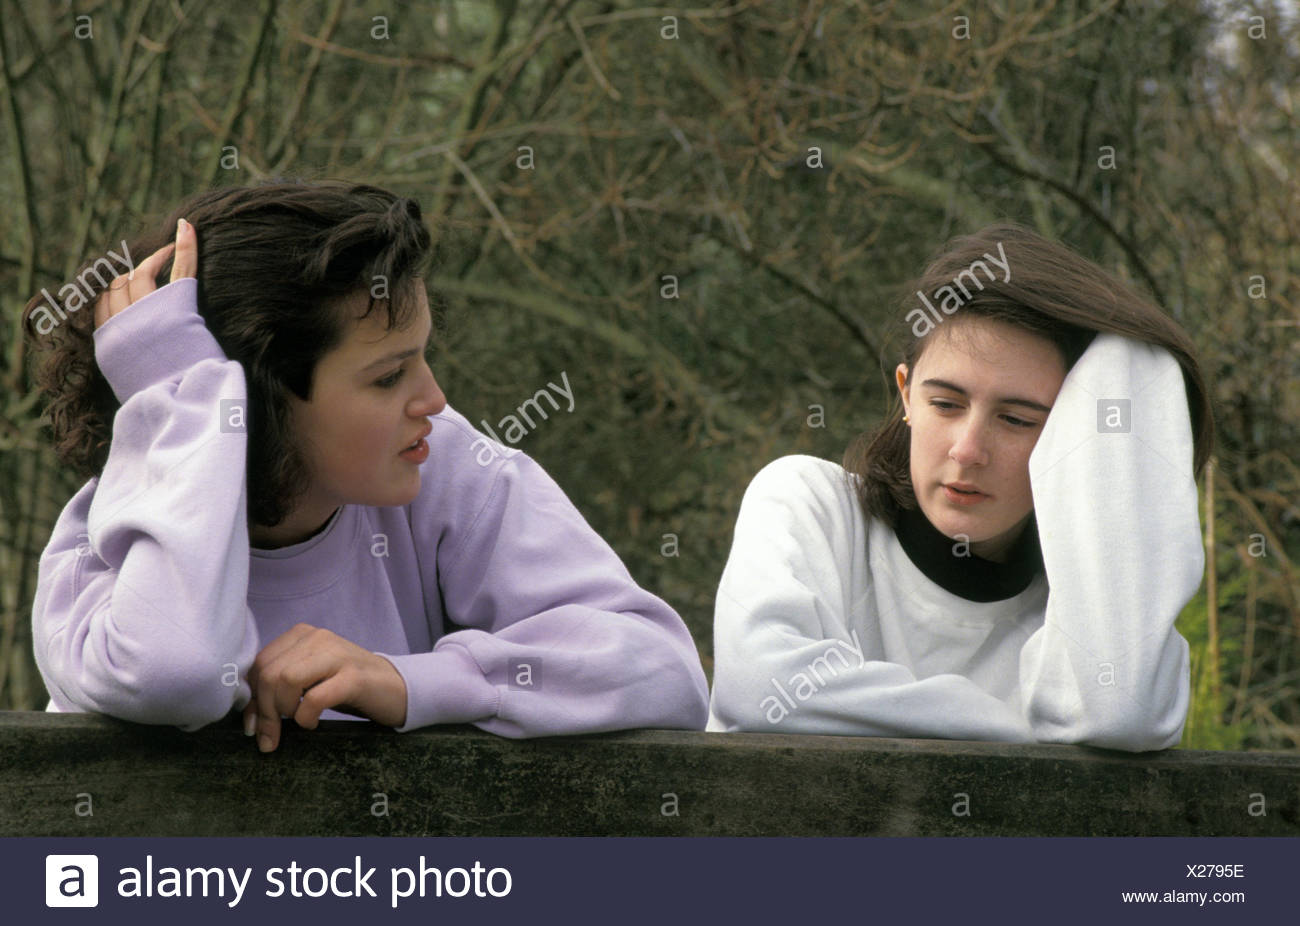 two teenage girls leaning over gate having conversation - Stock Image